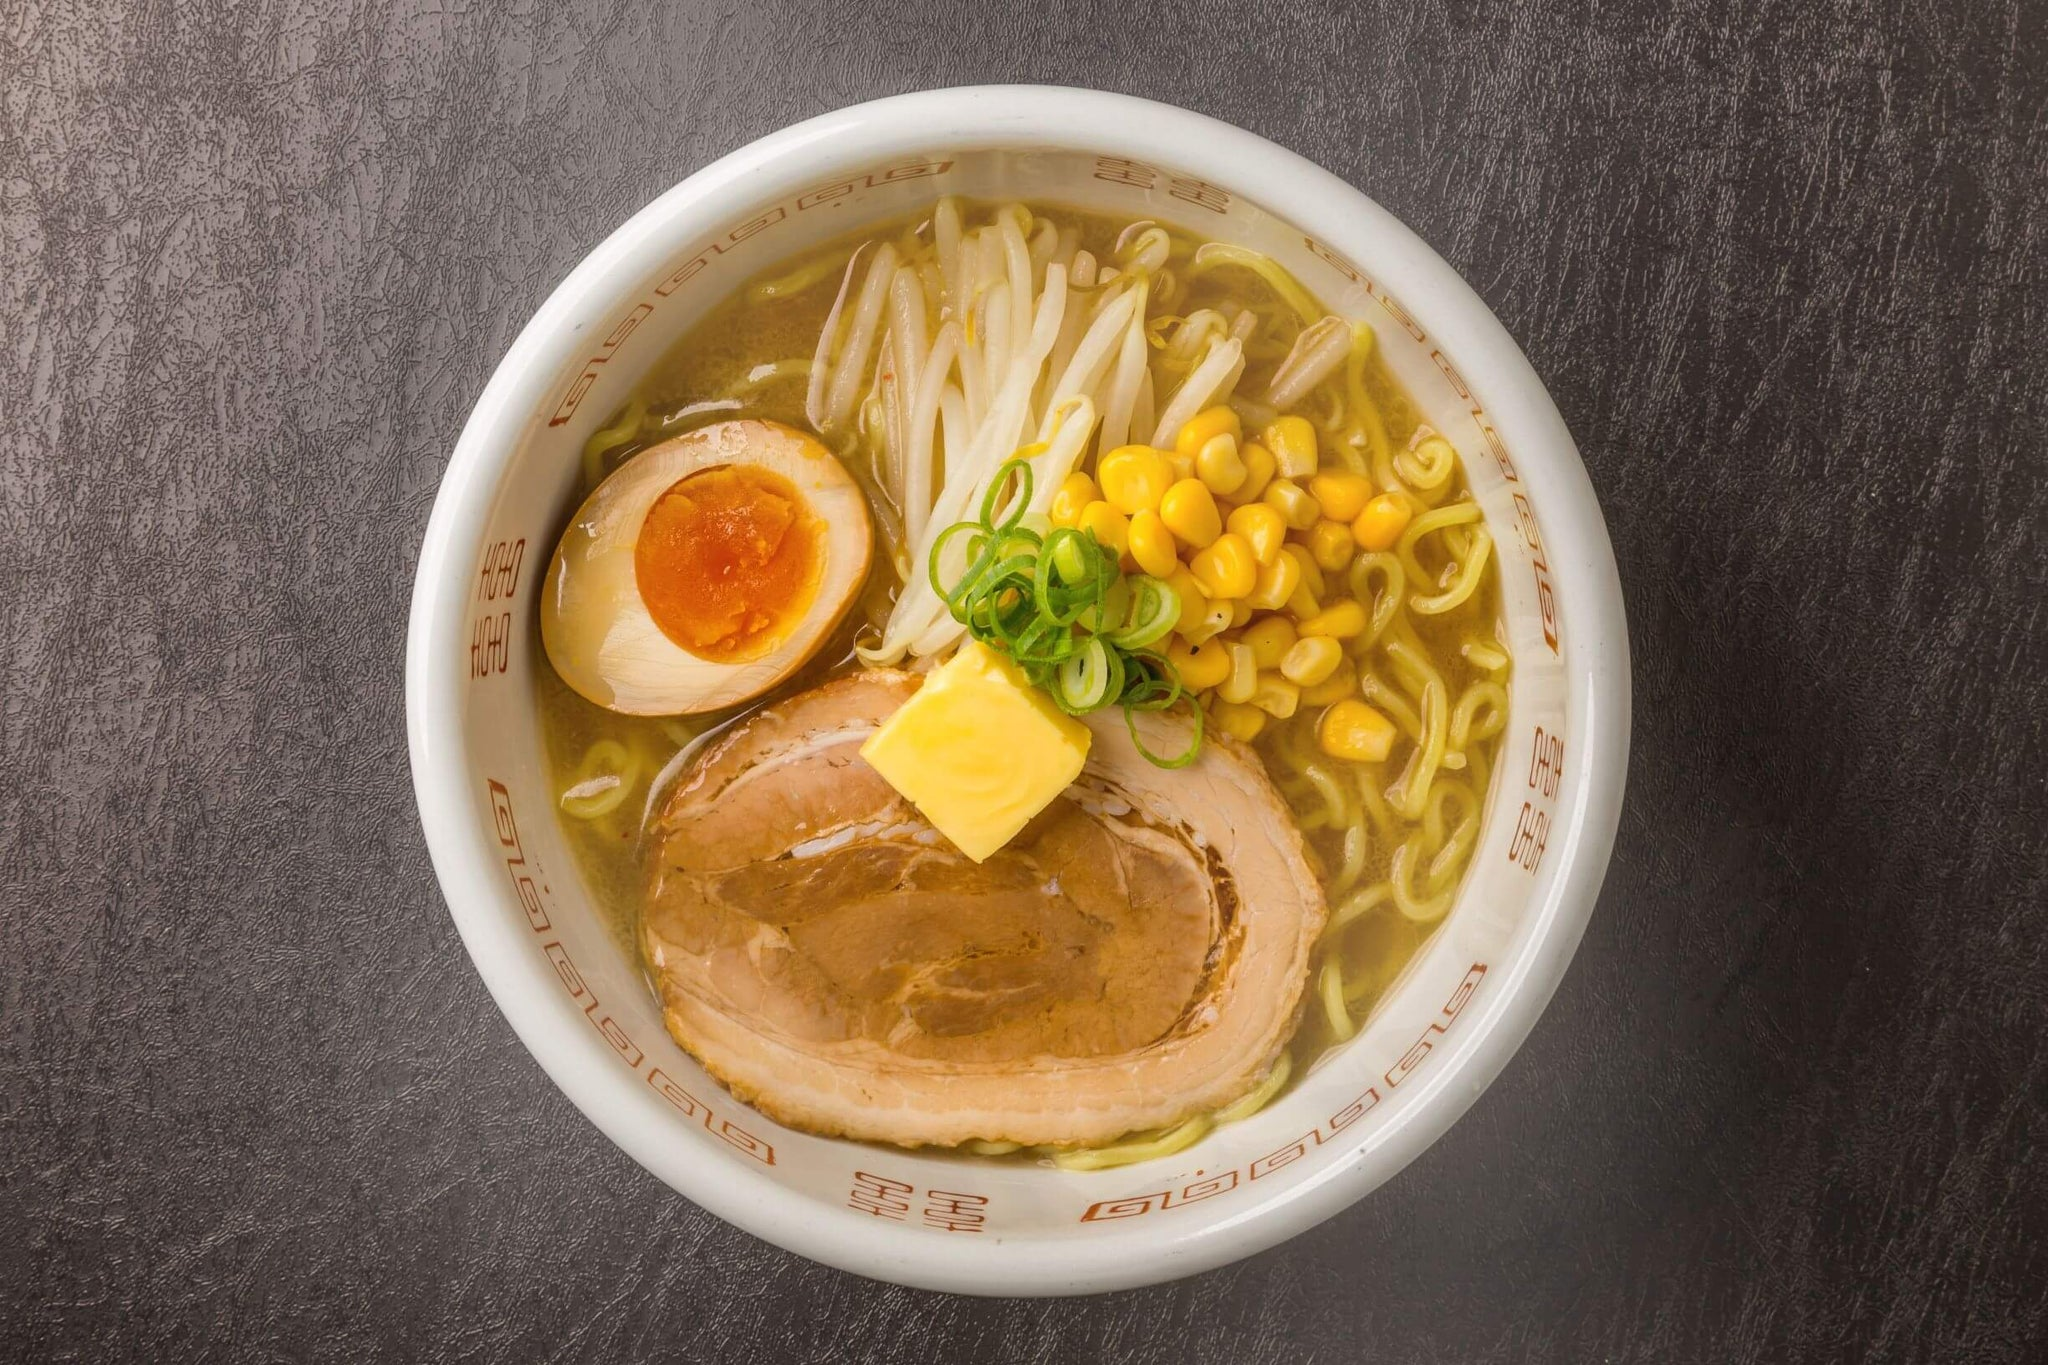 Miso ramen served with hot miso broth, sweet corn, boiled egg, roasted pork and a slice of butter.